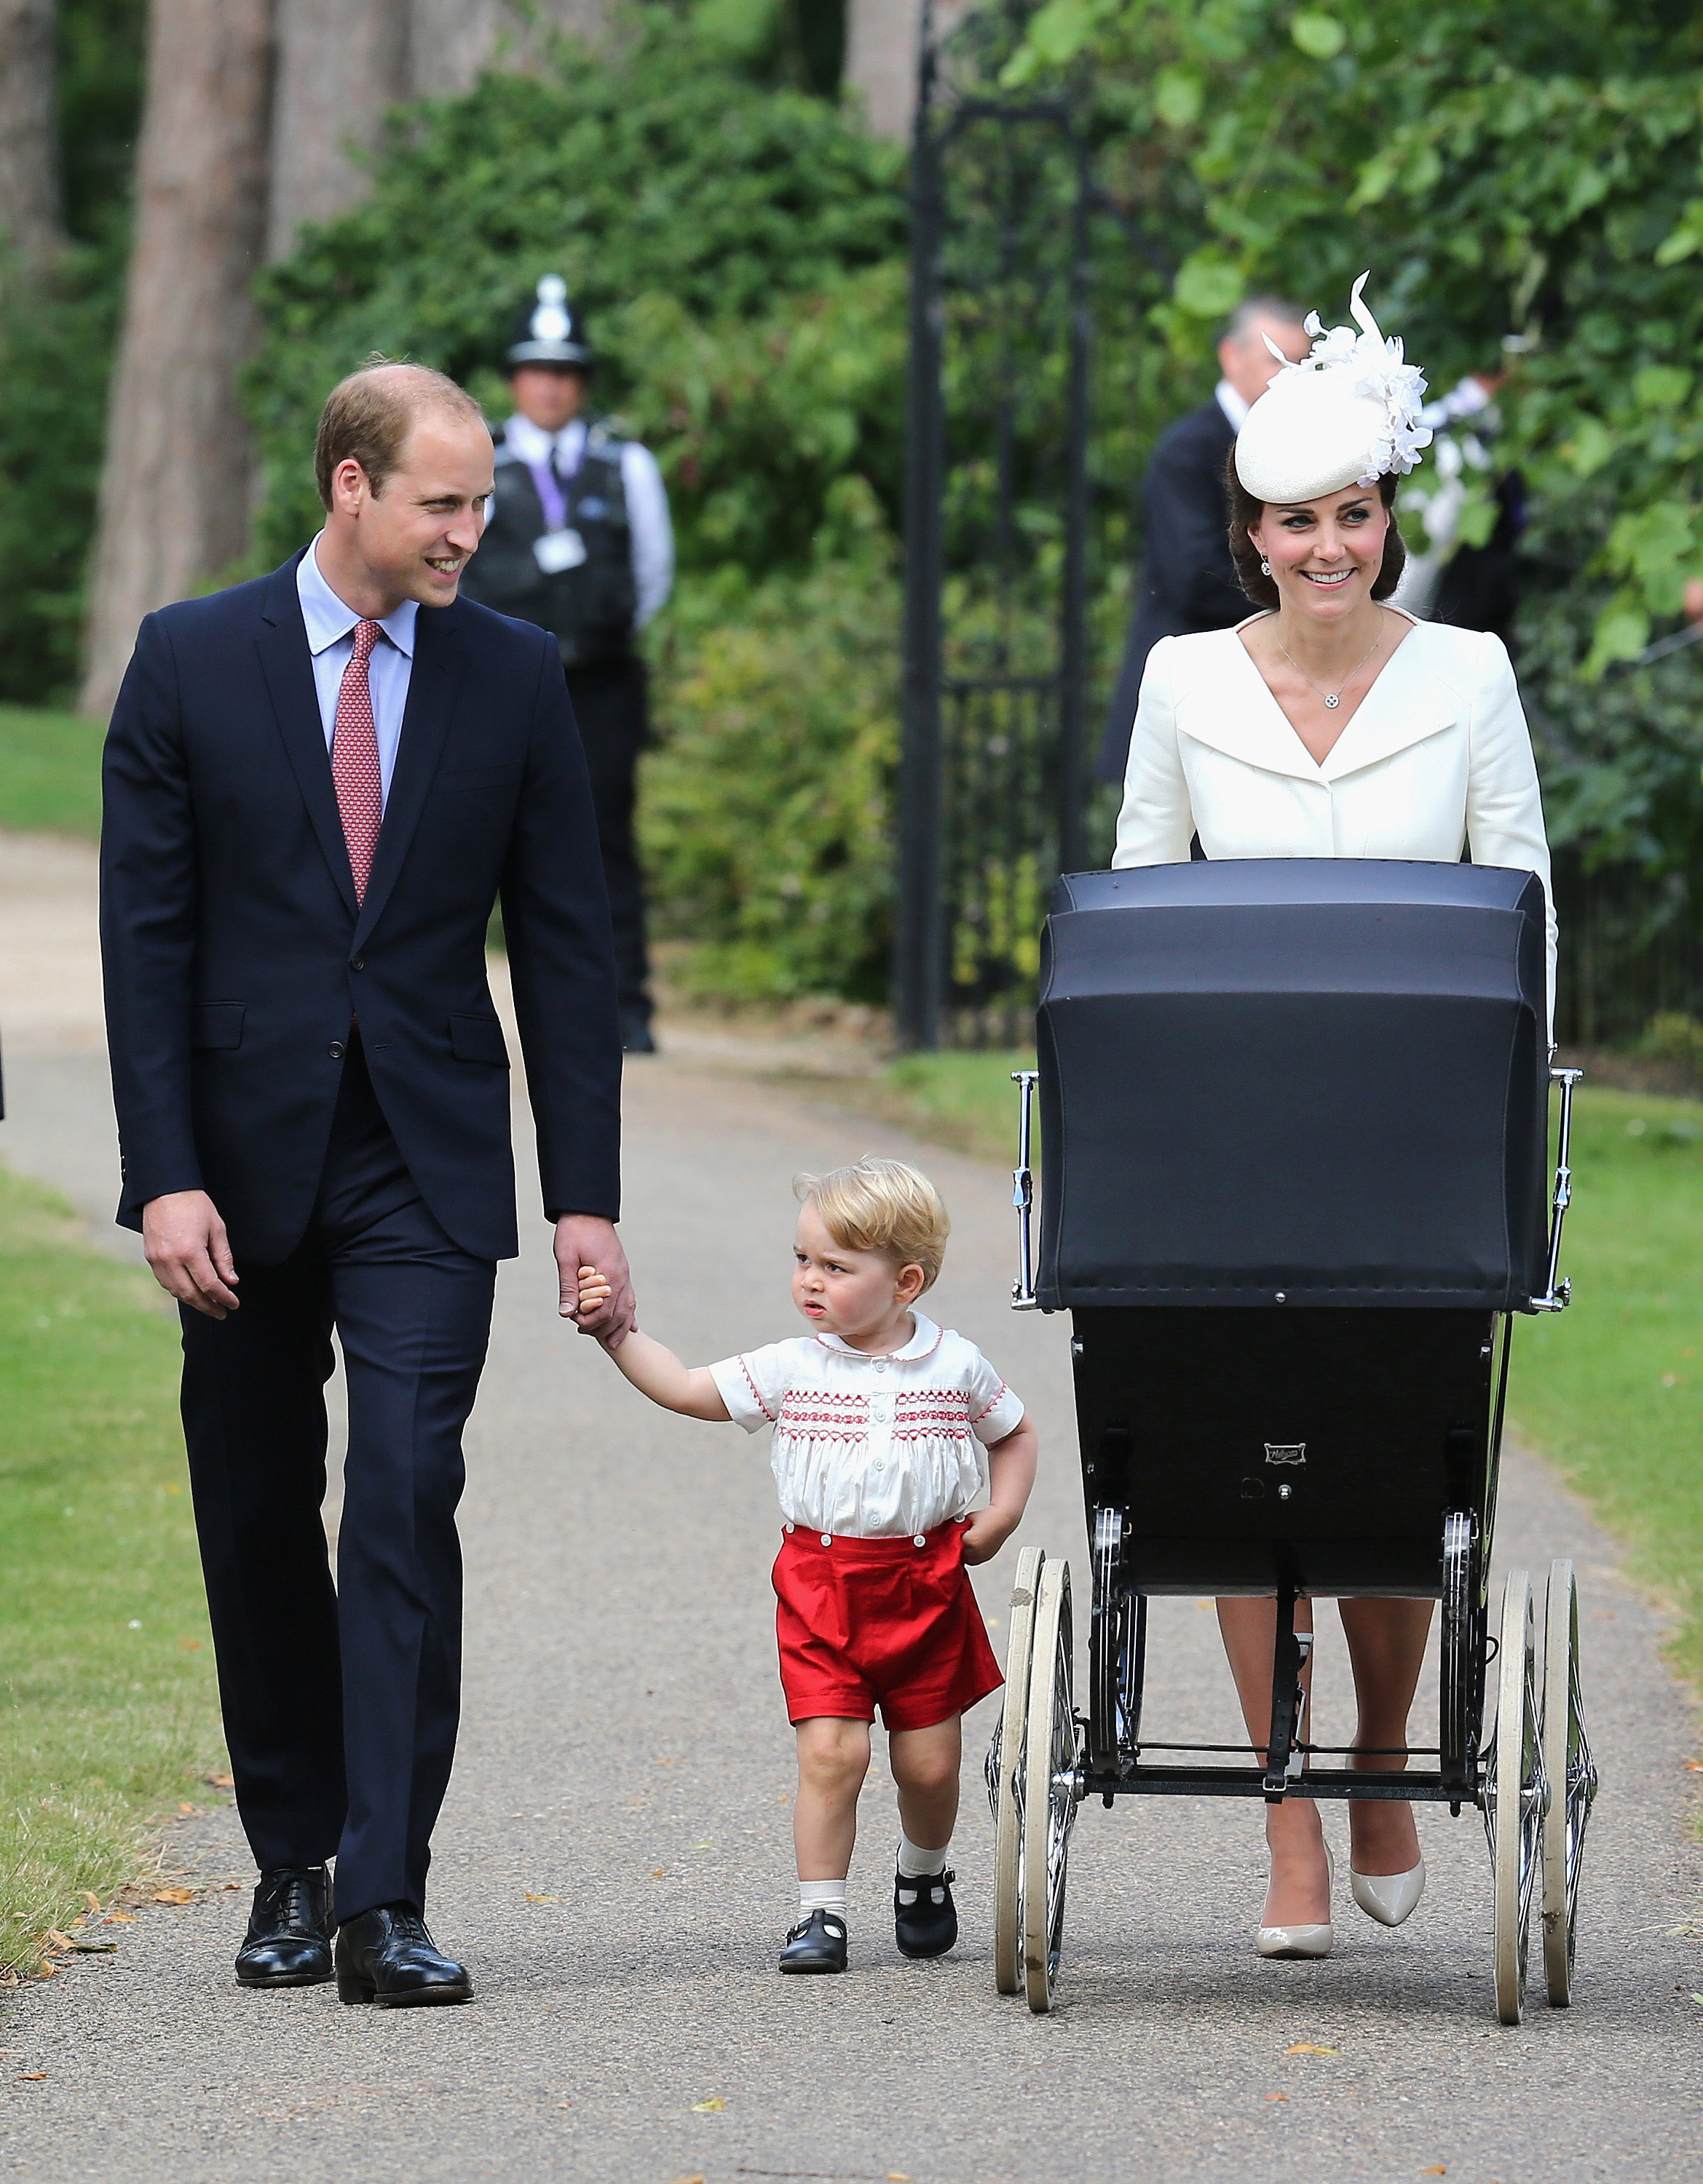 Britain's Prince William, Kate the Duchess of Cambridge, their son Prince George and daughter Princess Charlotte in a pram arrive for Charlotte's Christening at St. Mary Magdalene Church in Sandringham, England on July 5, 2015.